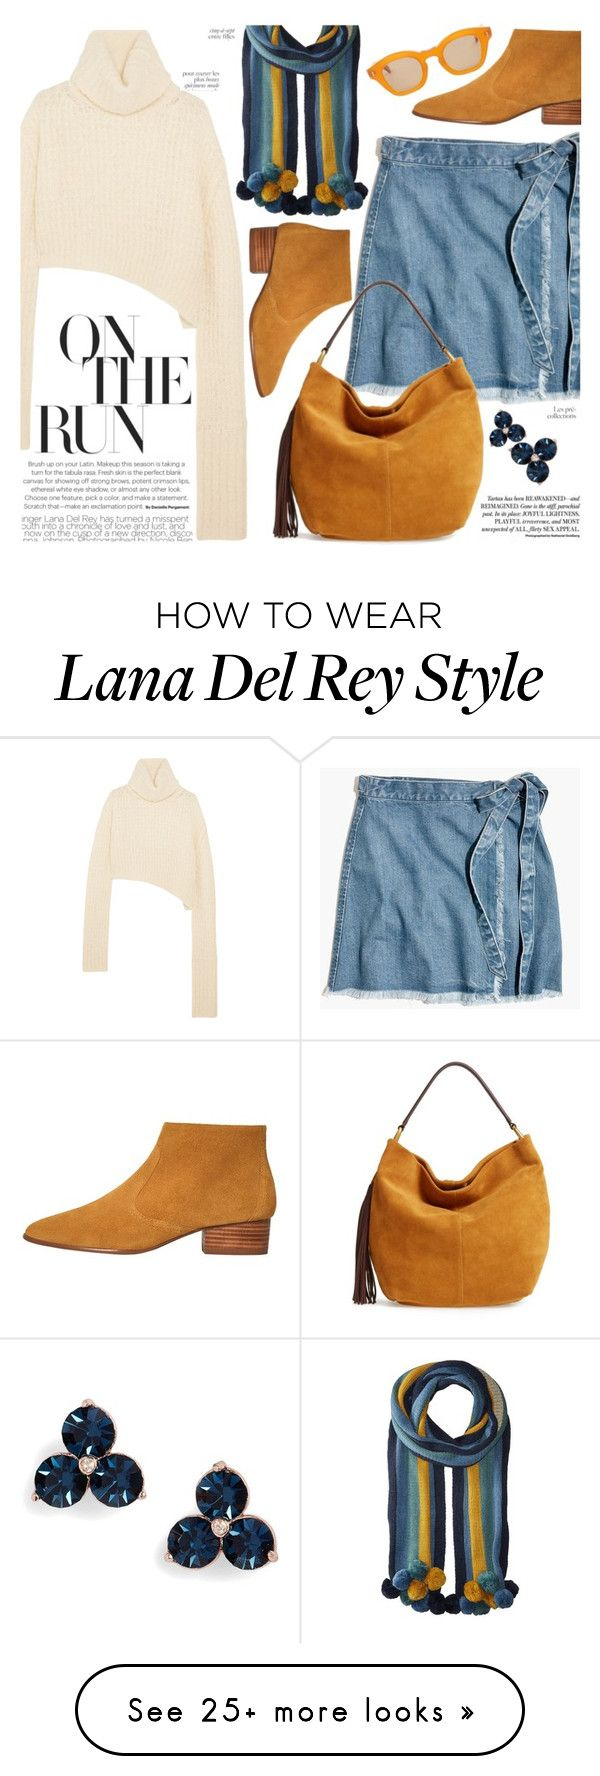 """""""denim wrap-around skirt"""" by paperdollsq on Polyvore featuring Ann Demeulemeester, BCBGeneration, Madewell, HOBO, MANGO, Kate Spade, By Terry and Hakusan"""